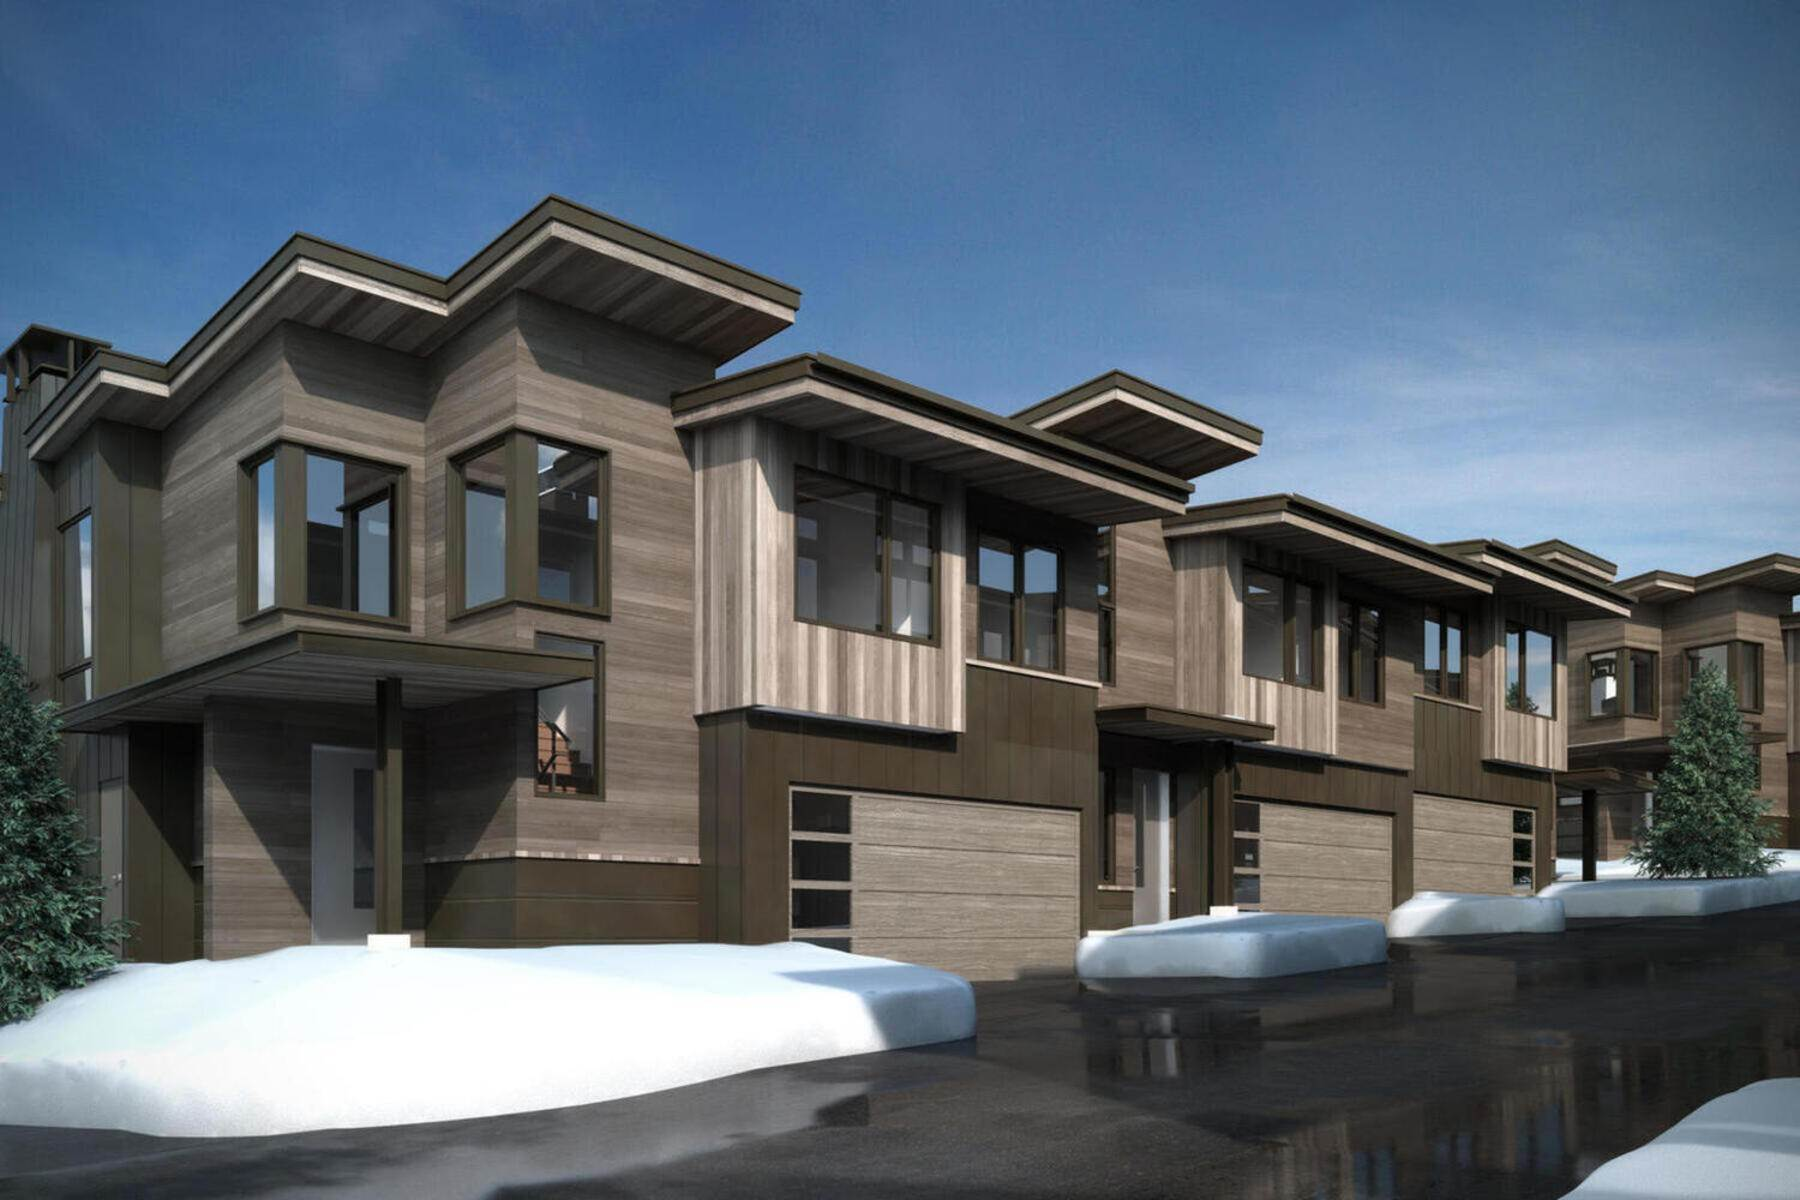 17. townhouses for Sale at Ski In Town Homes in Canyons Village 3478 Ridgeline Drive Park City, Utah 84098 United States